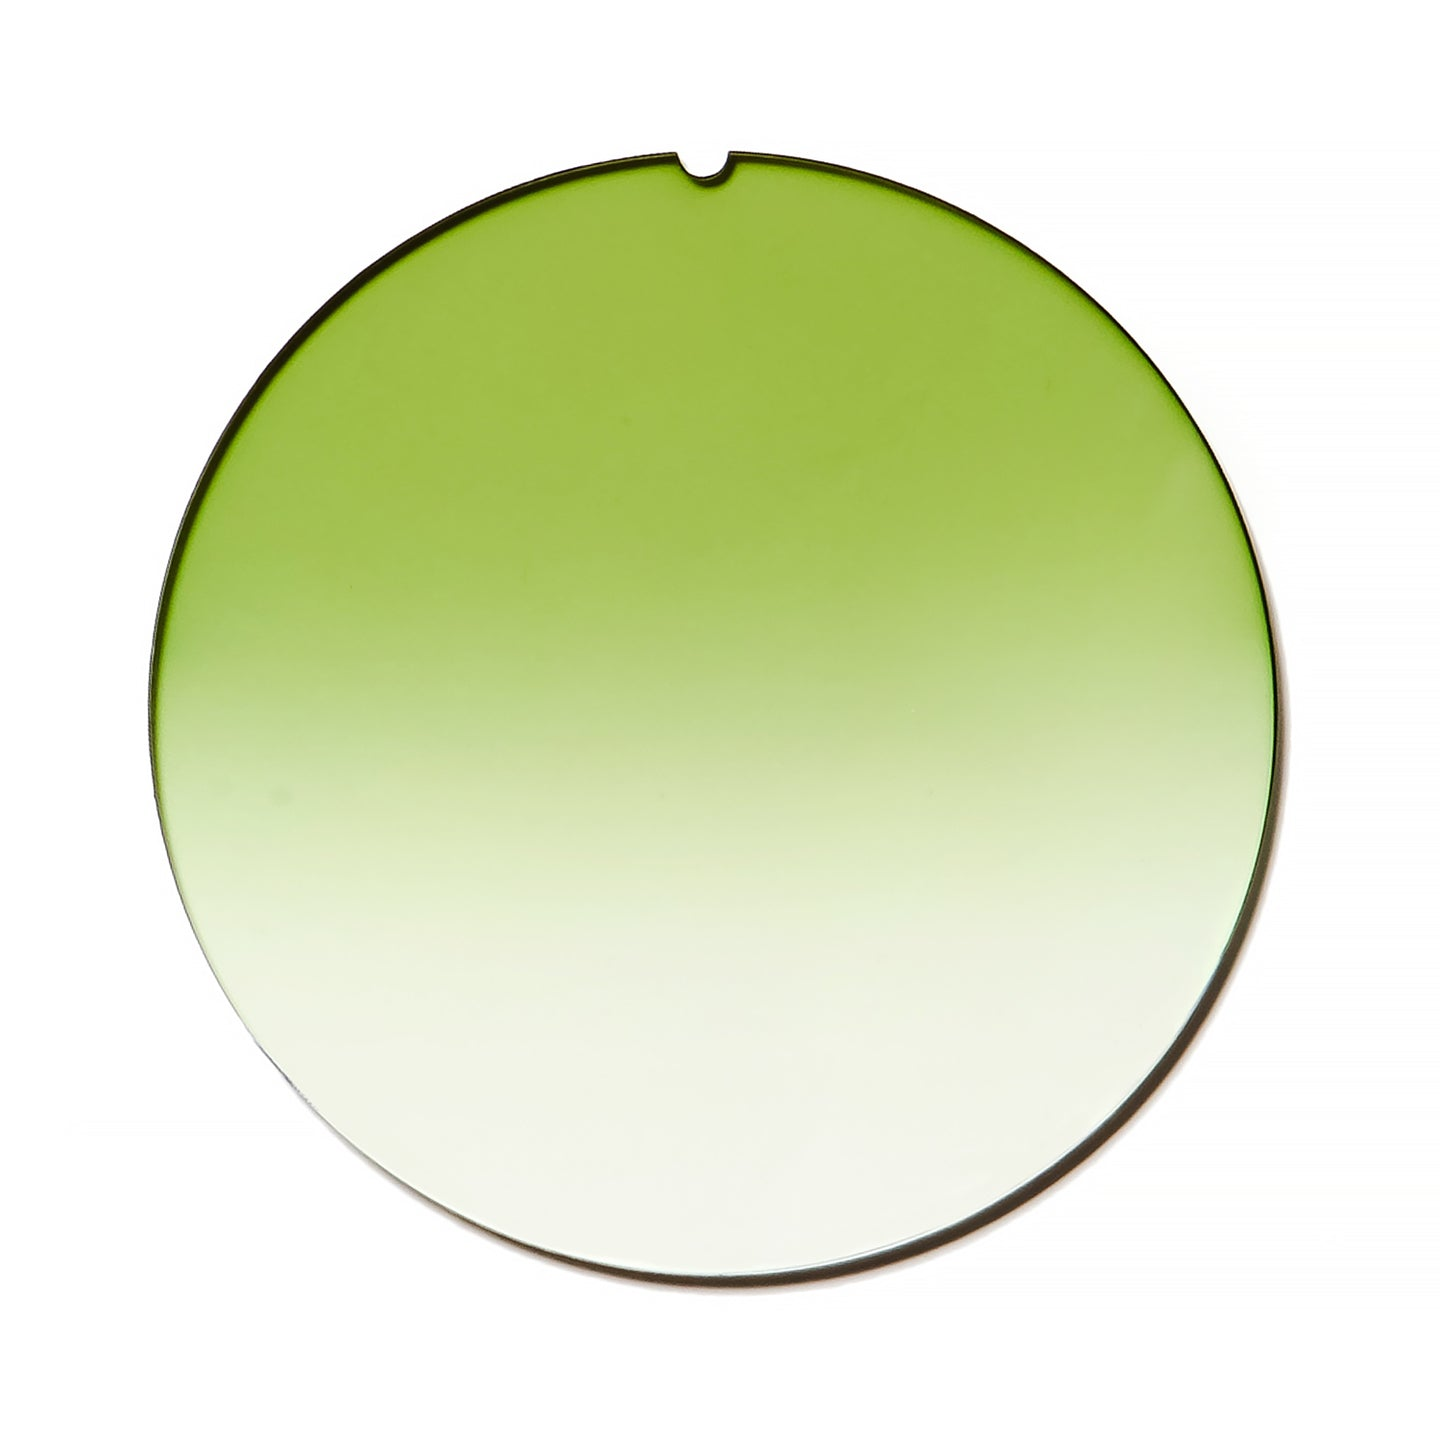 089 - Field Green Gradient Flat Lens, lens, vintage lens, clear lens, lens frames, lens frame, circle lens, mens glasses, womens glasses, lens width, vintage frames company, vf